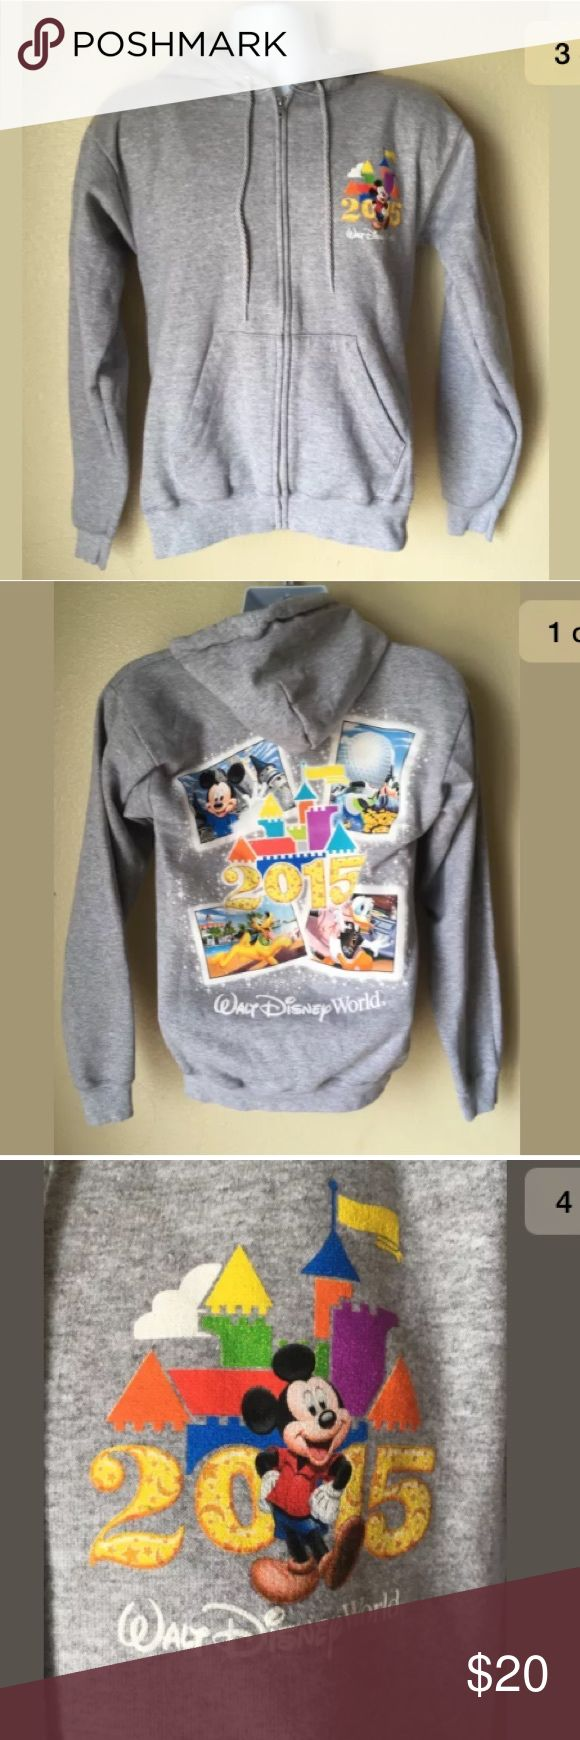 Disneyland 2015 Gray Zipper Hoodie Small Disneyland 2015 Unisex / men's Gray Zipper Hoodie Adult Small S Disneyland Shirts Sweatshirts & Hoodies